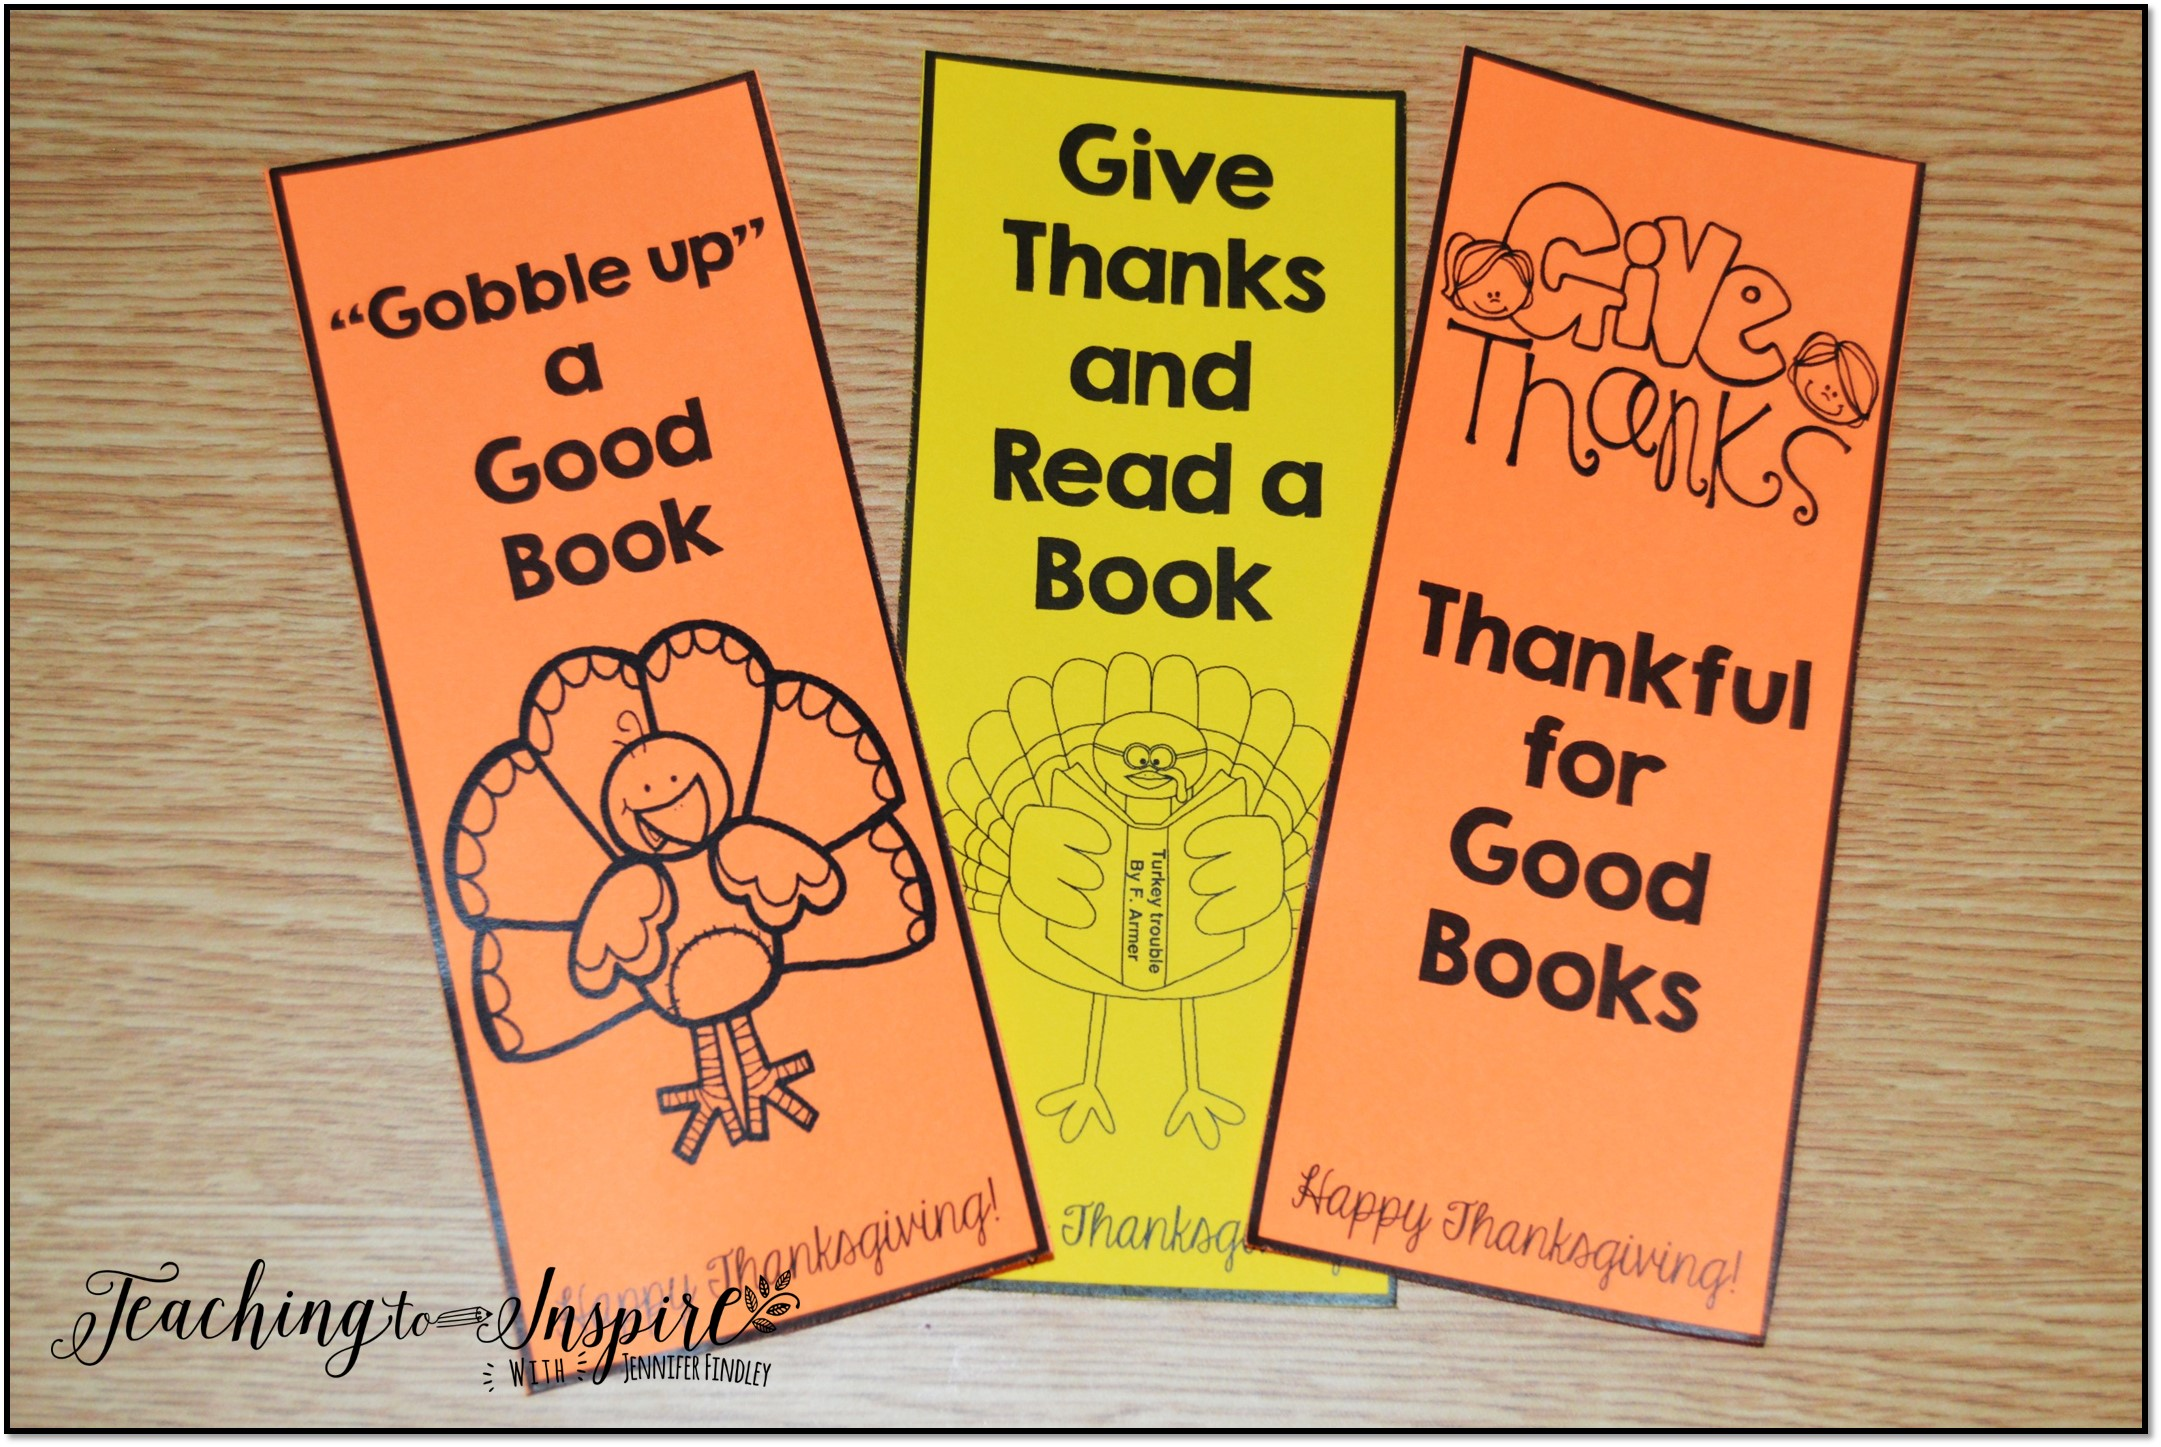 Thanksgiving Activities for Upper Elementary - Teaching to Inspire ...